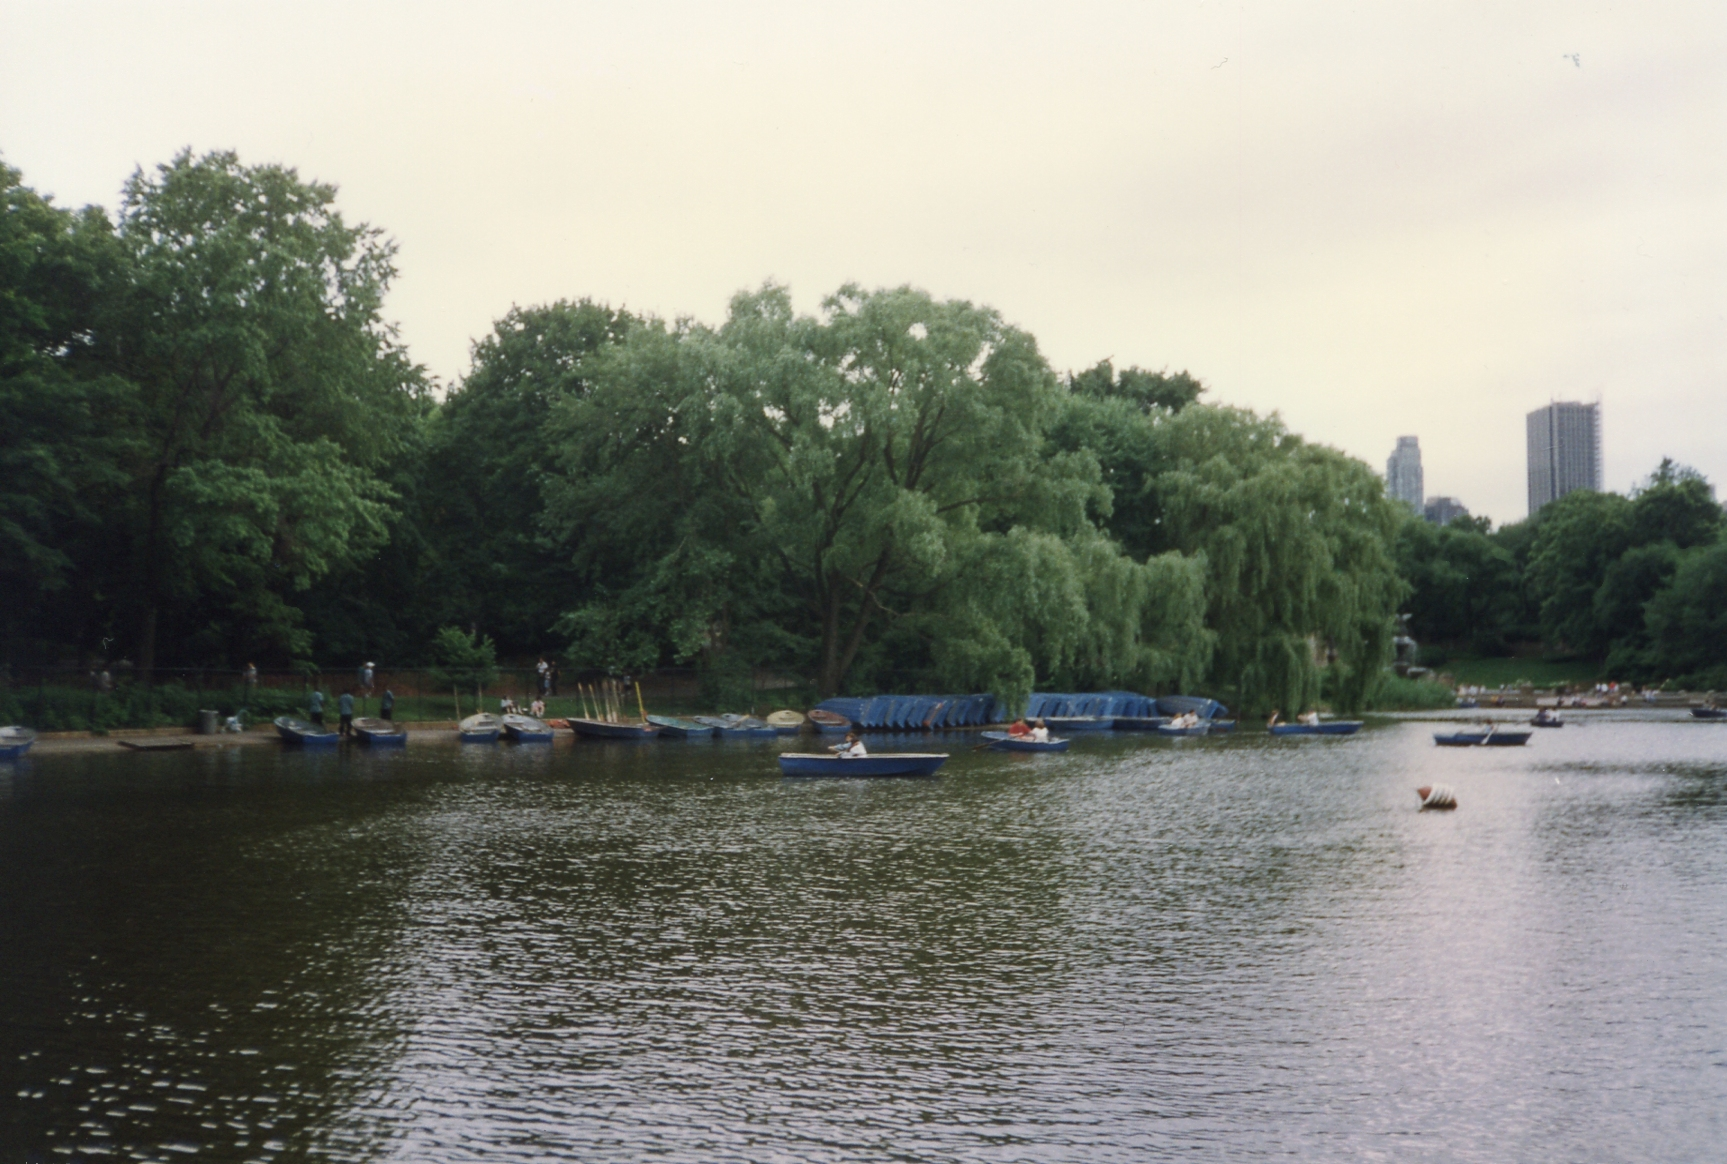 Boathouse in Central Park, New York